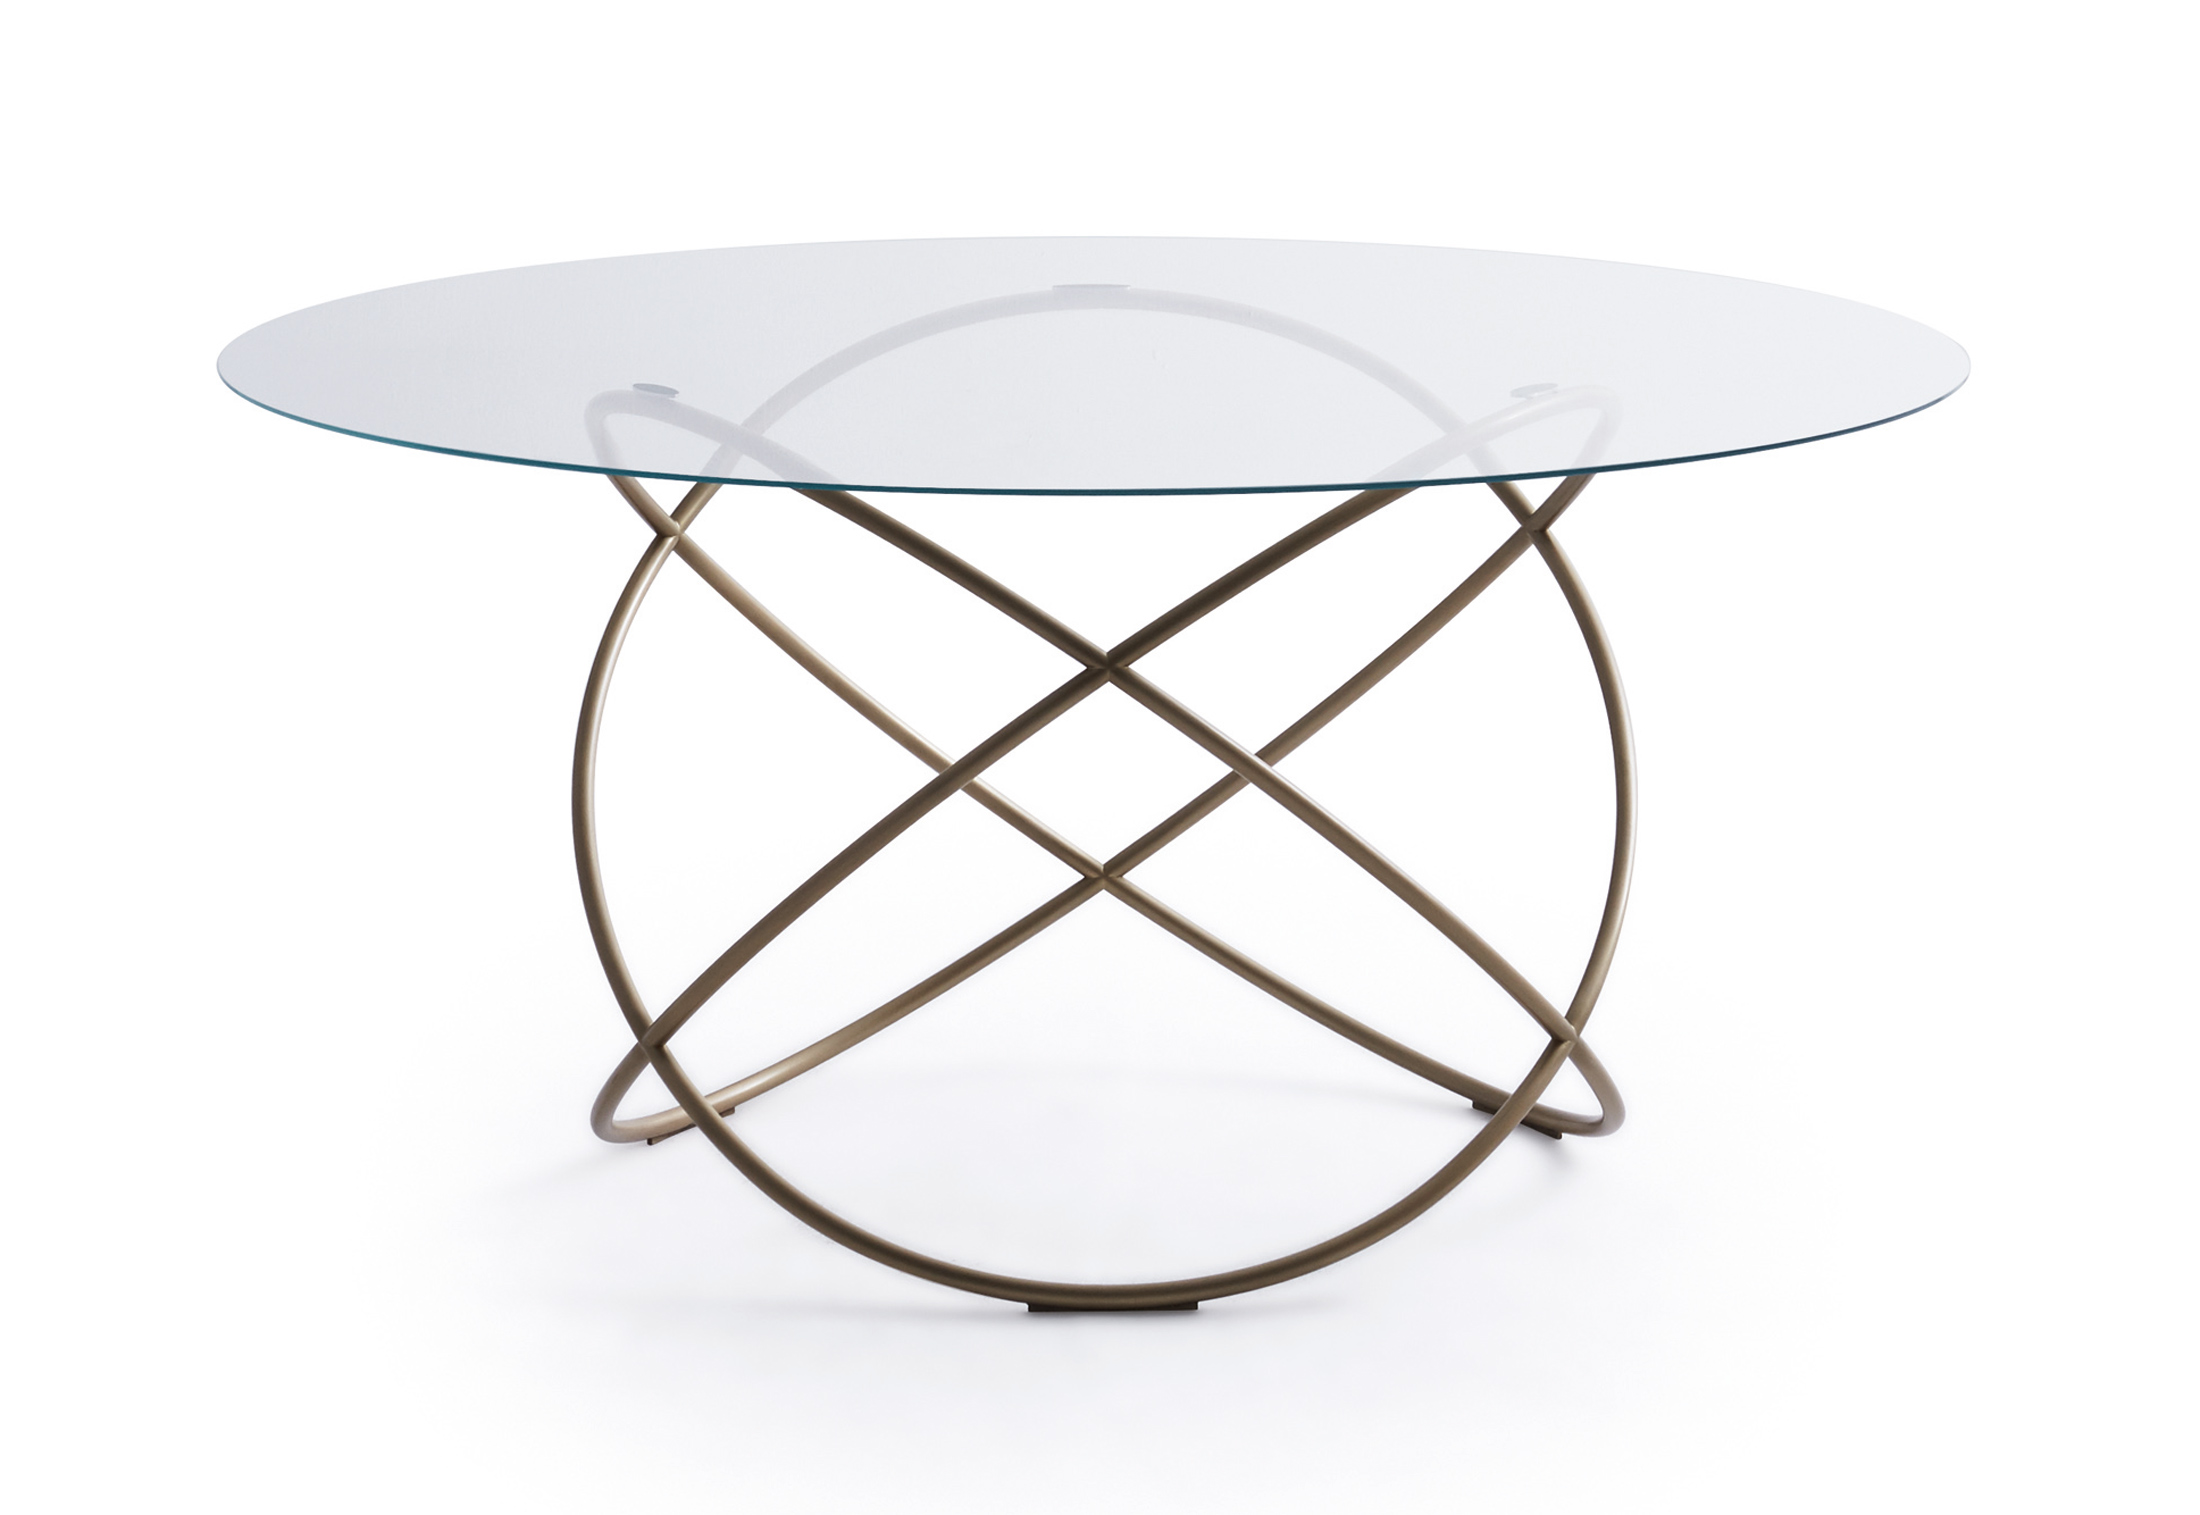 Sfera Dining Table by Ron Gilad for Molteni & C